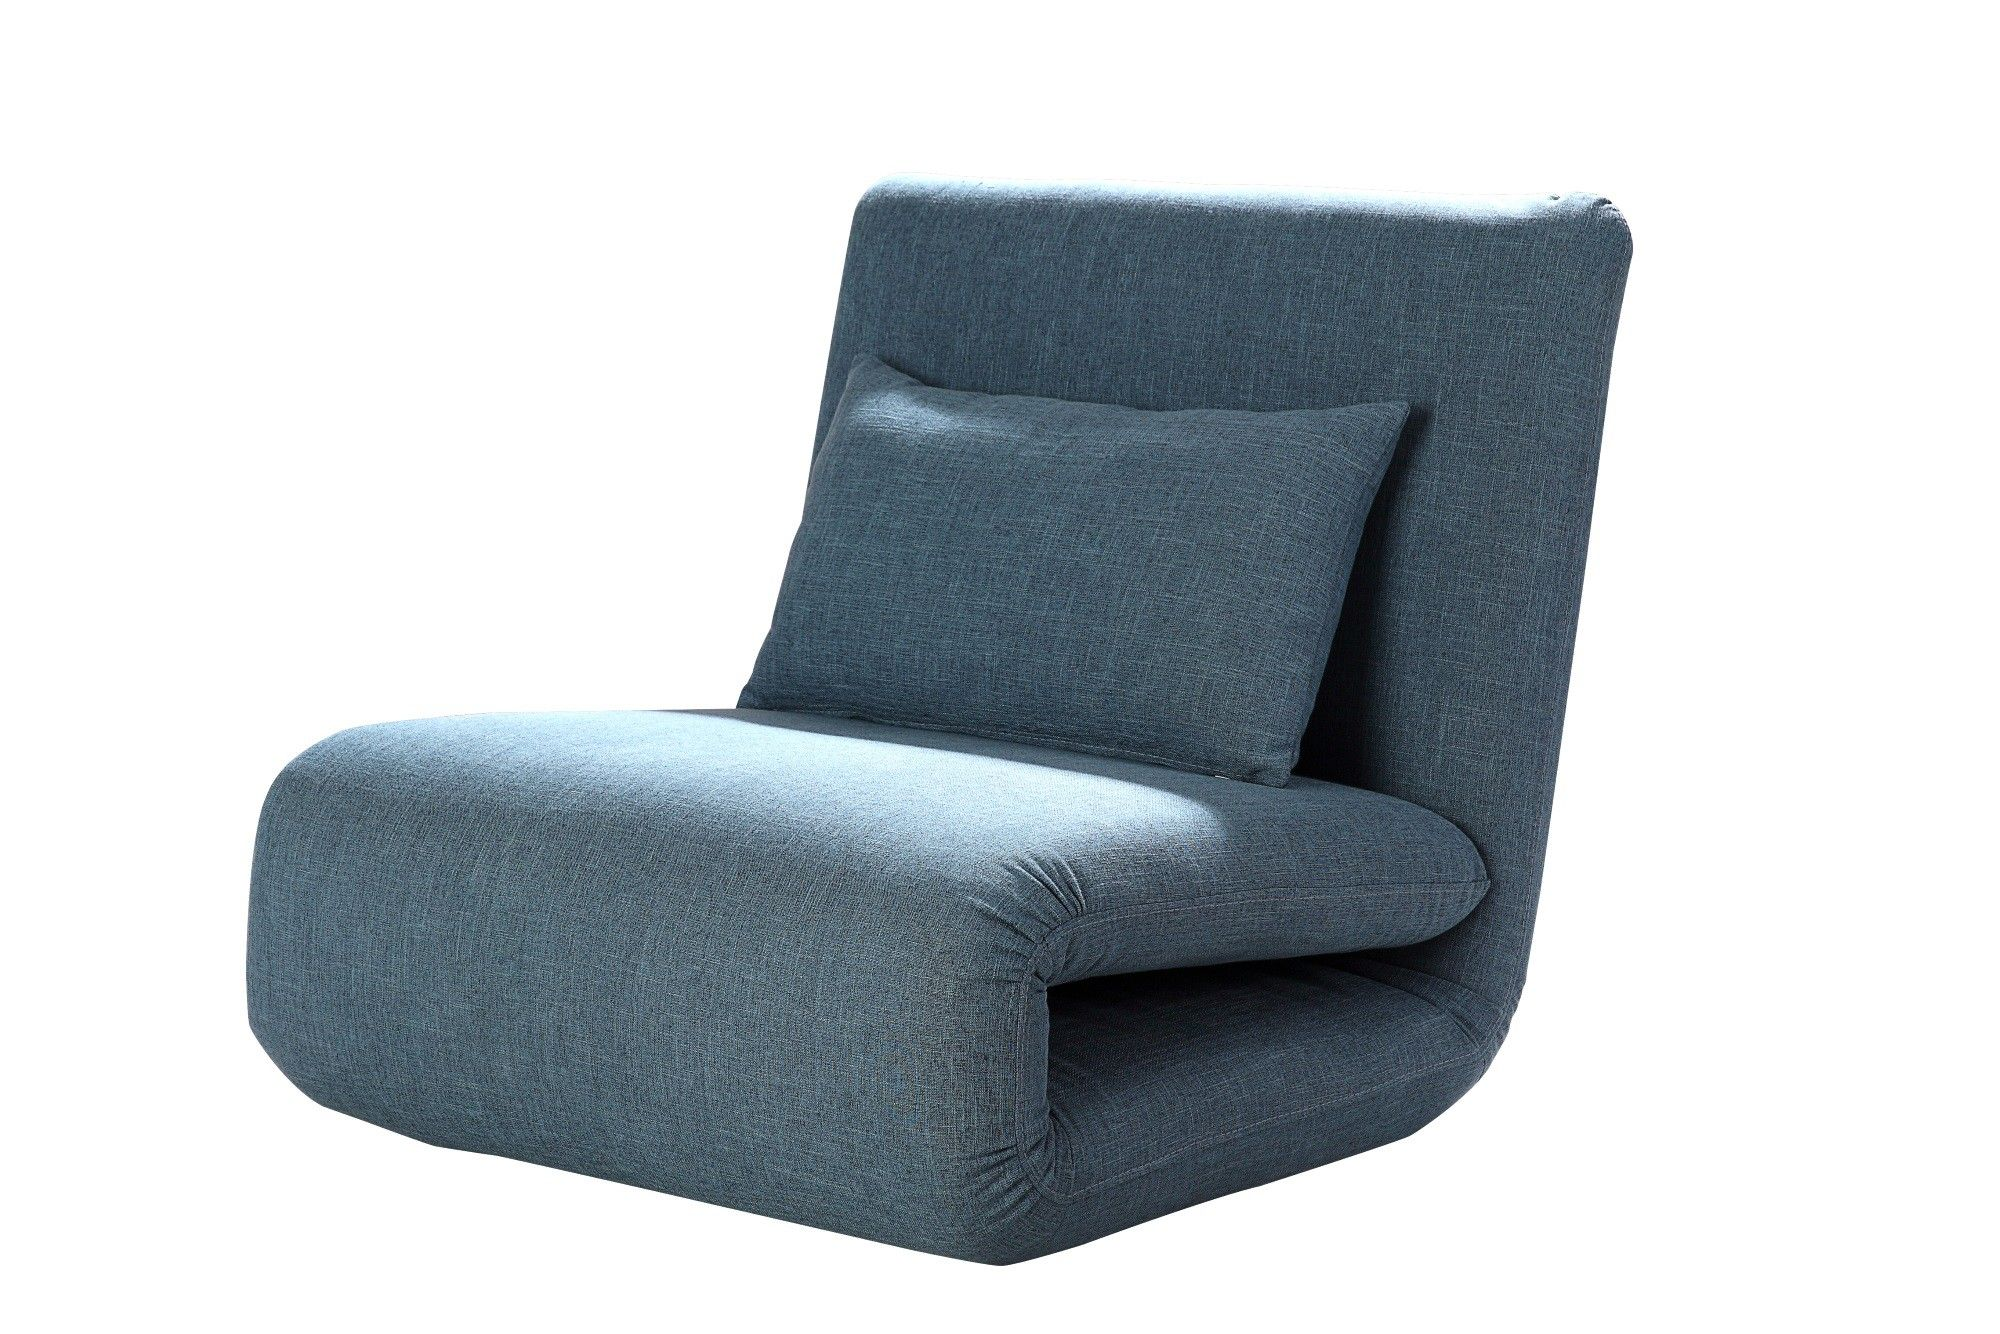 fauteuil design convertible en tissu bleu norton. Black Bedroom Furniture Sets. Home Design Ideas